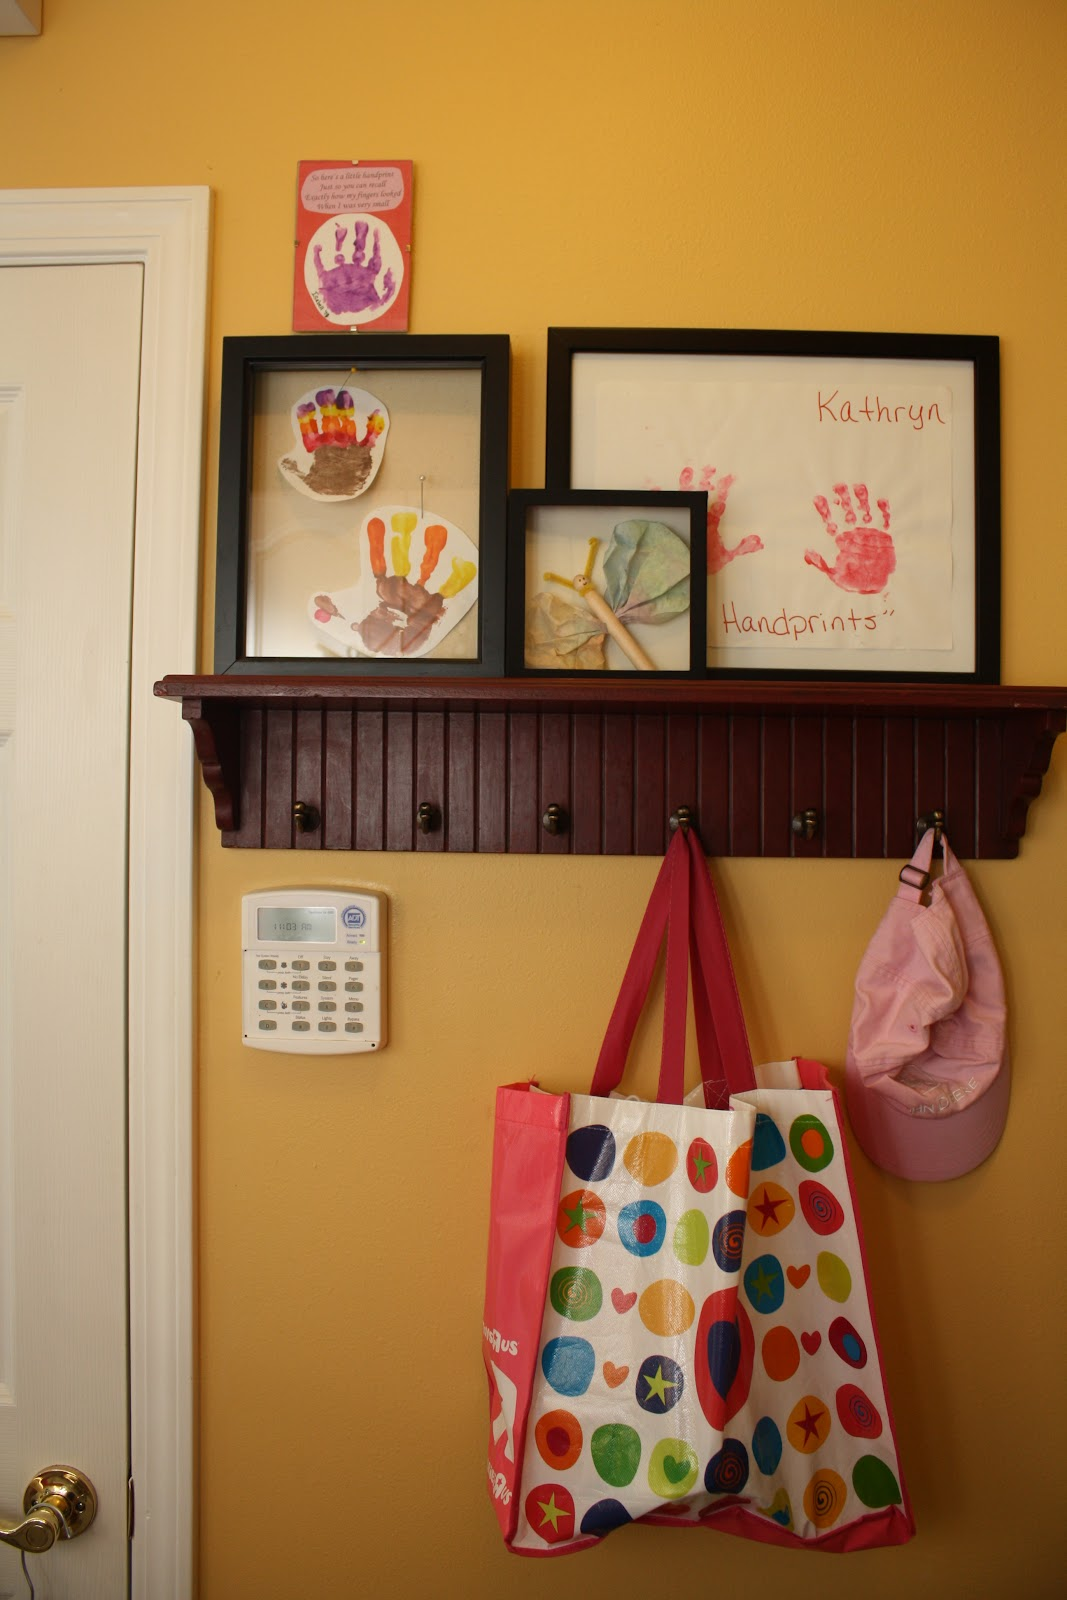 Bella Kate's: Laundry Room & Kids Art